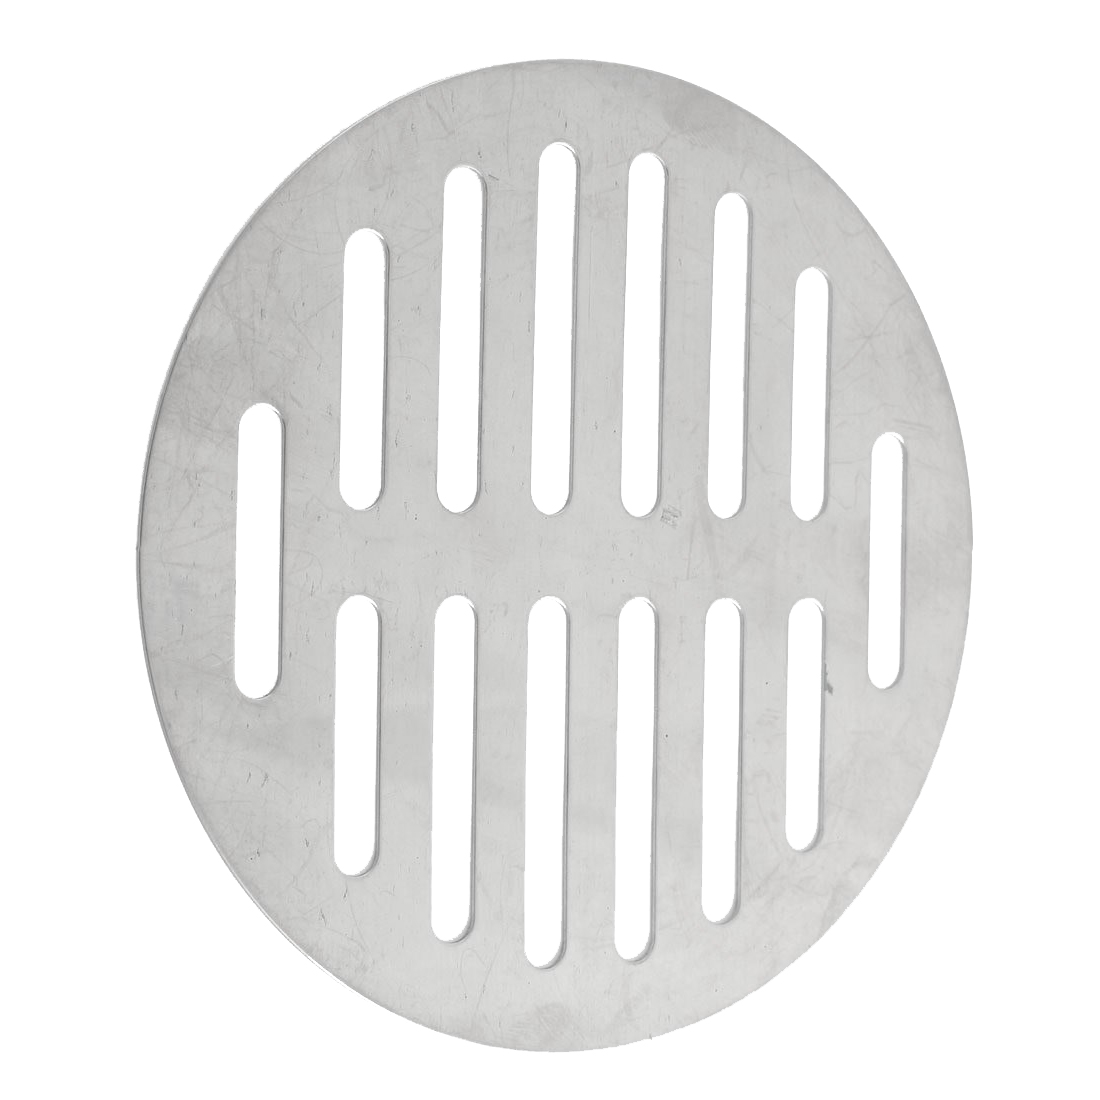 Home Bathroom Supplies Silver Tone Stainless Steel Floor Drain Cover T1